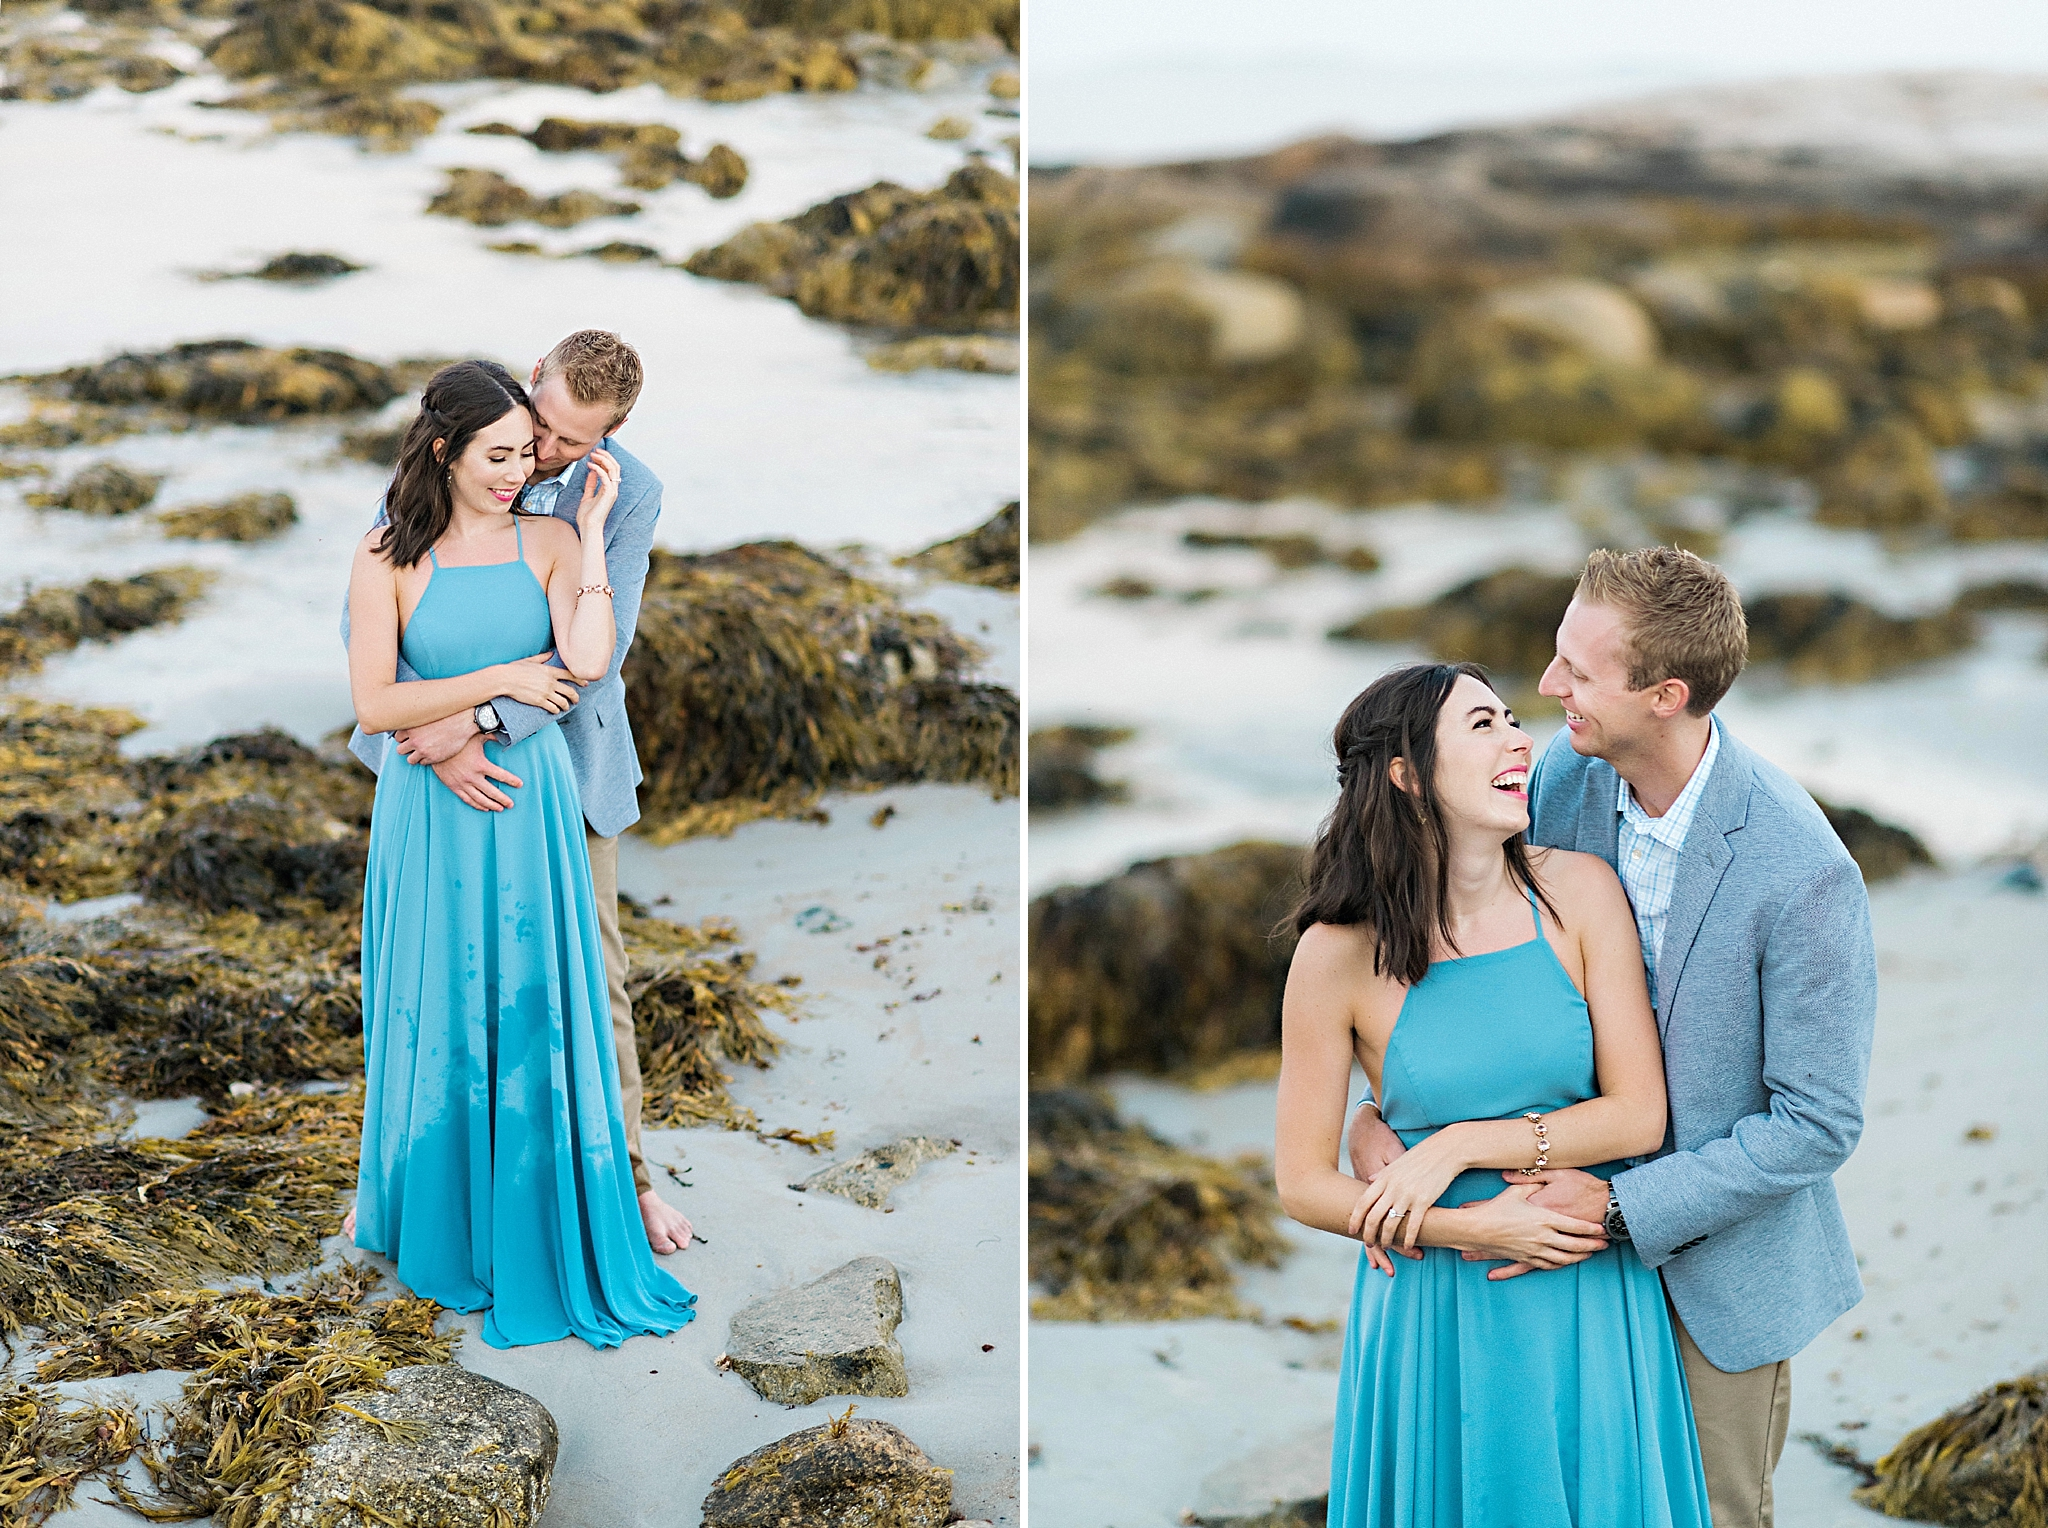 Romantic Seaside Beach Engagement Shoot in Lulu's long flowy maxy dress_042.jpg